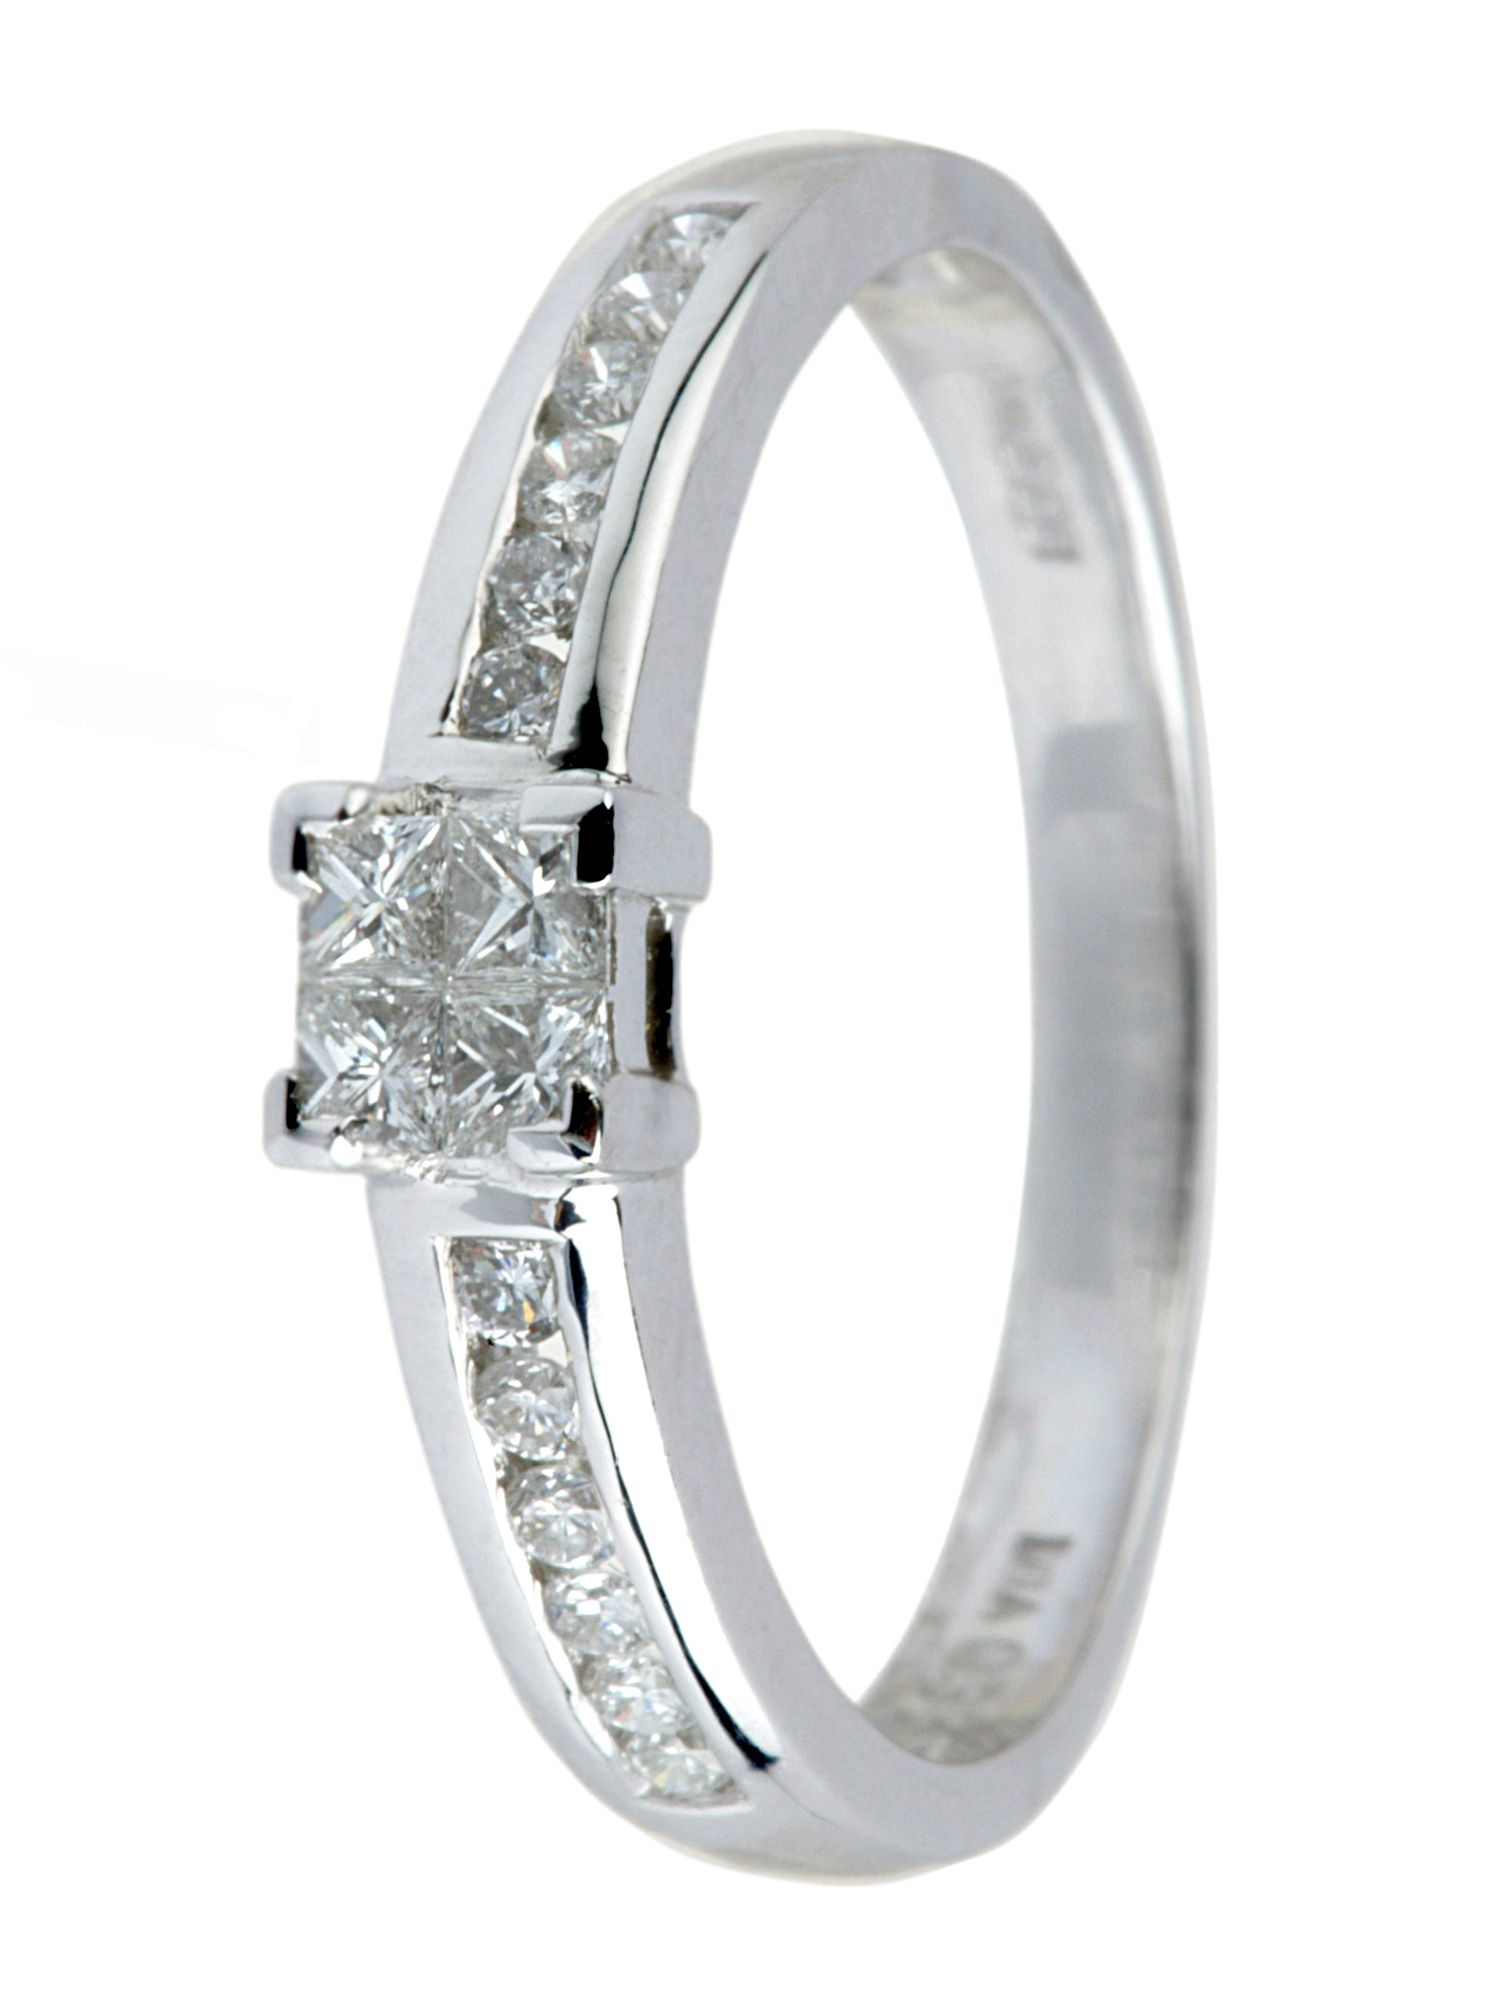 18ct white gold 0.33ct princess cut ring